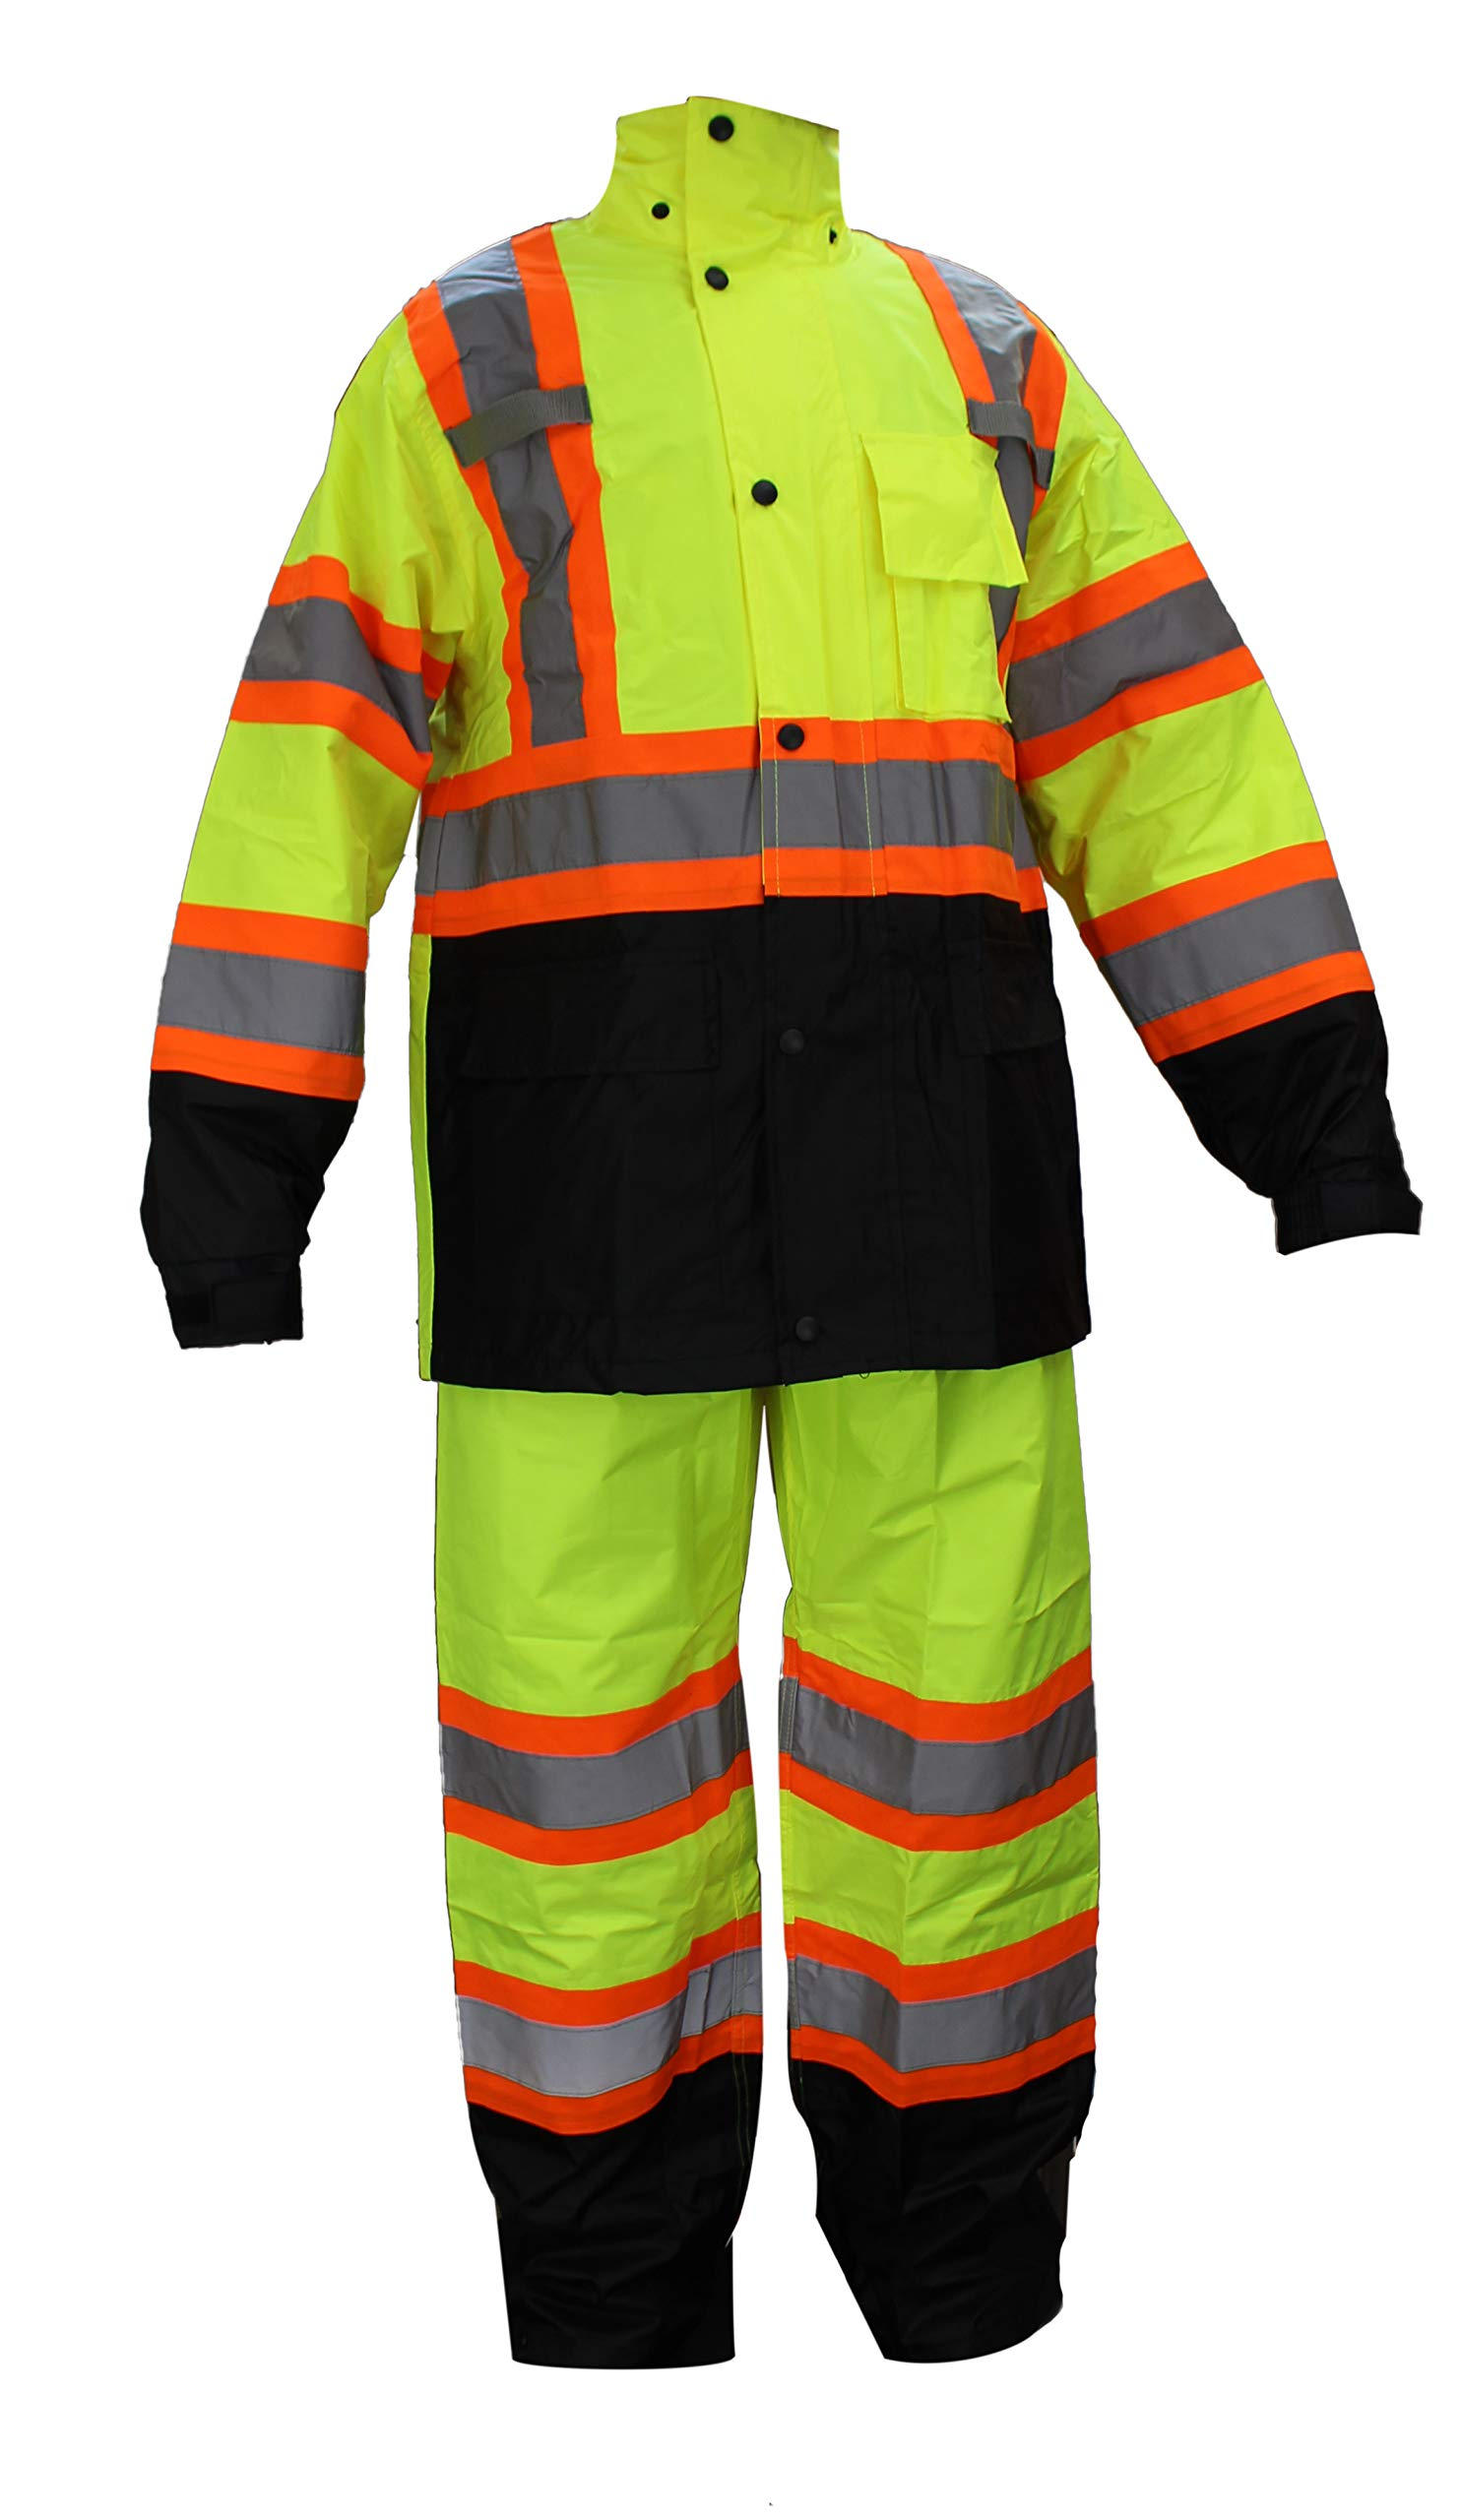 RK Safety RW-CLA3-TLM55 Class 3 Rain suit, Jacket, Pants High Visibility Reflective Black Bottom with X Pattern (3XL, Lime)